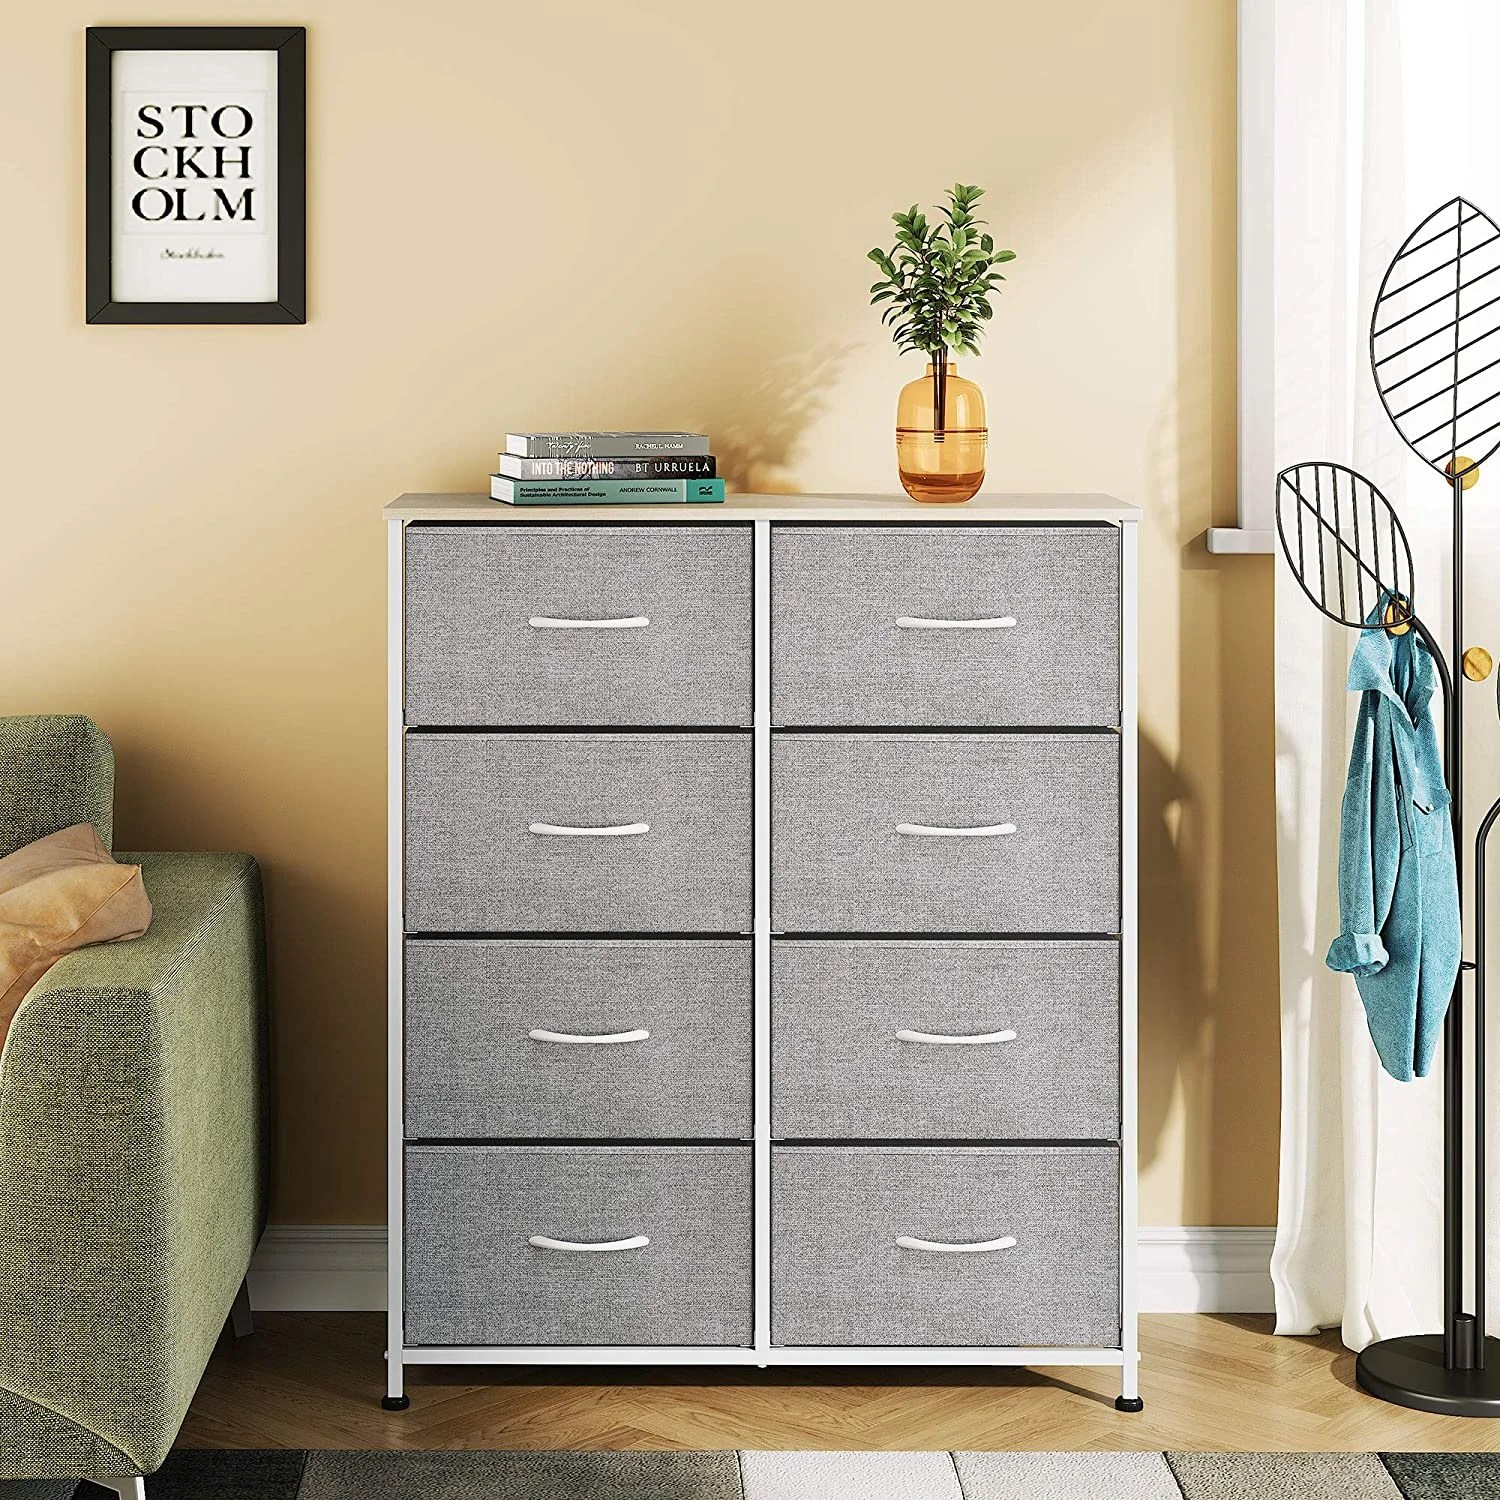 wlive vertical storage tower dresser with 8 easy pull fabric drawers sturdy metal frame wood tabletop easy pull handle organizer unit for